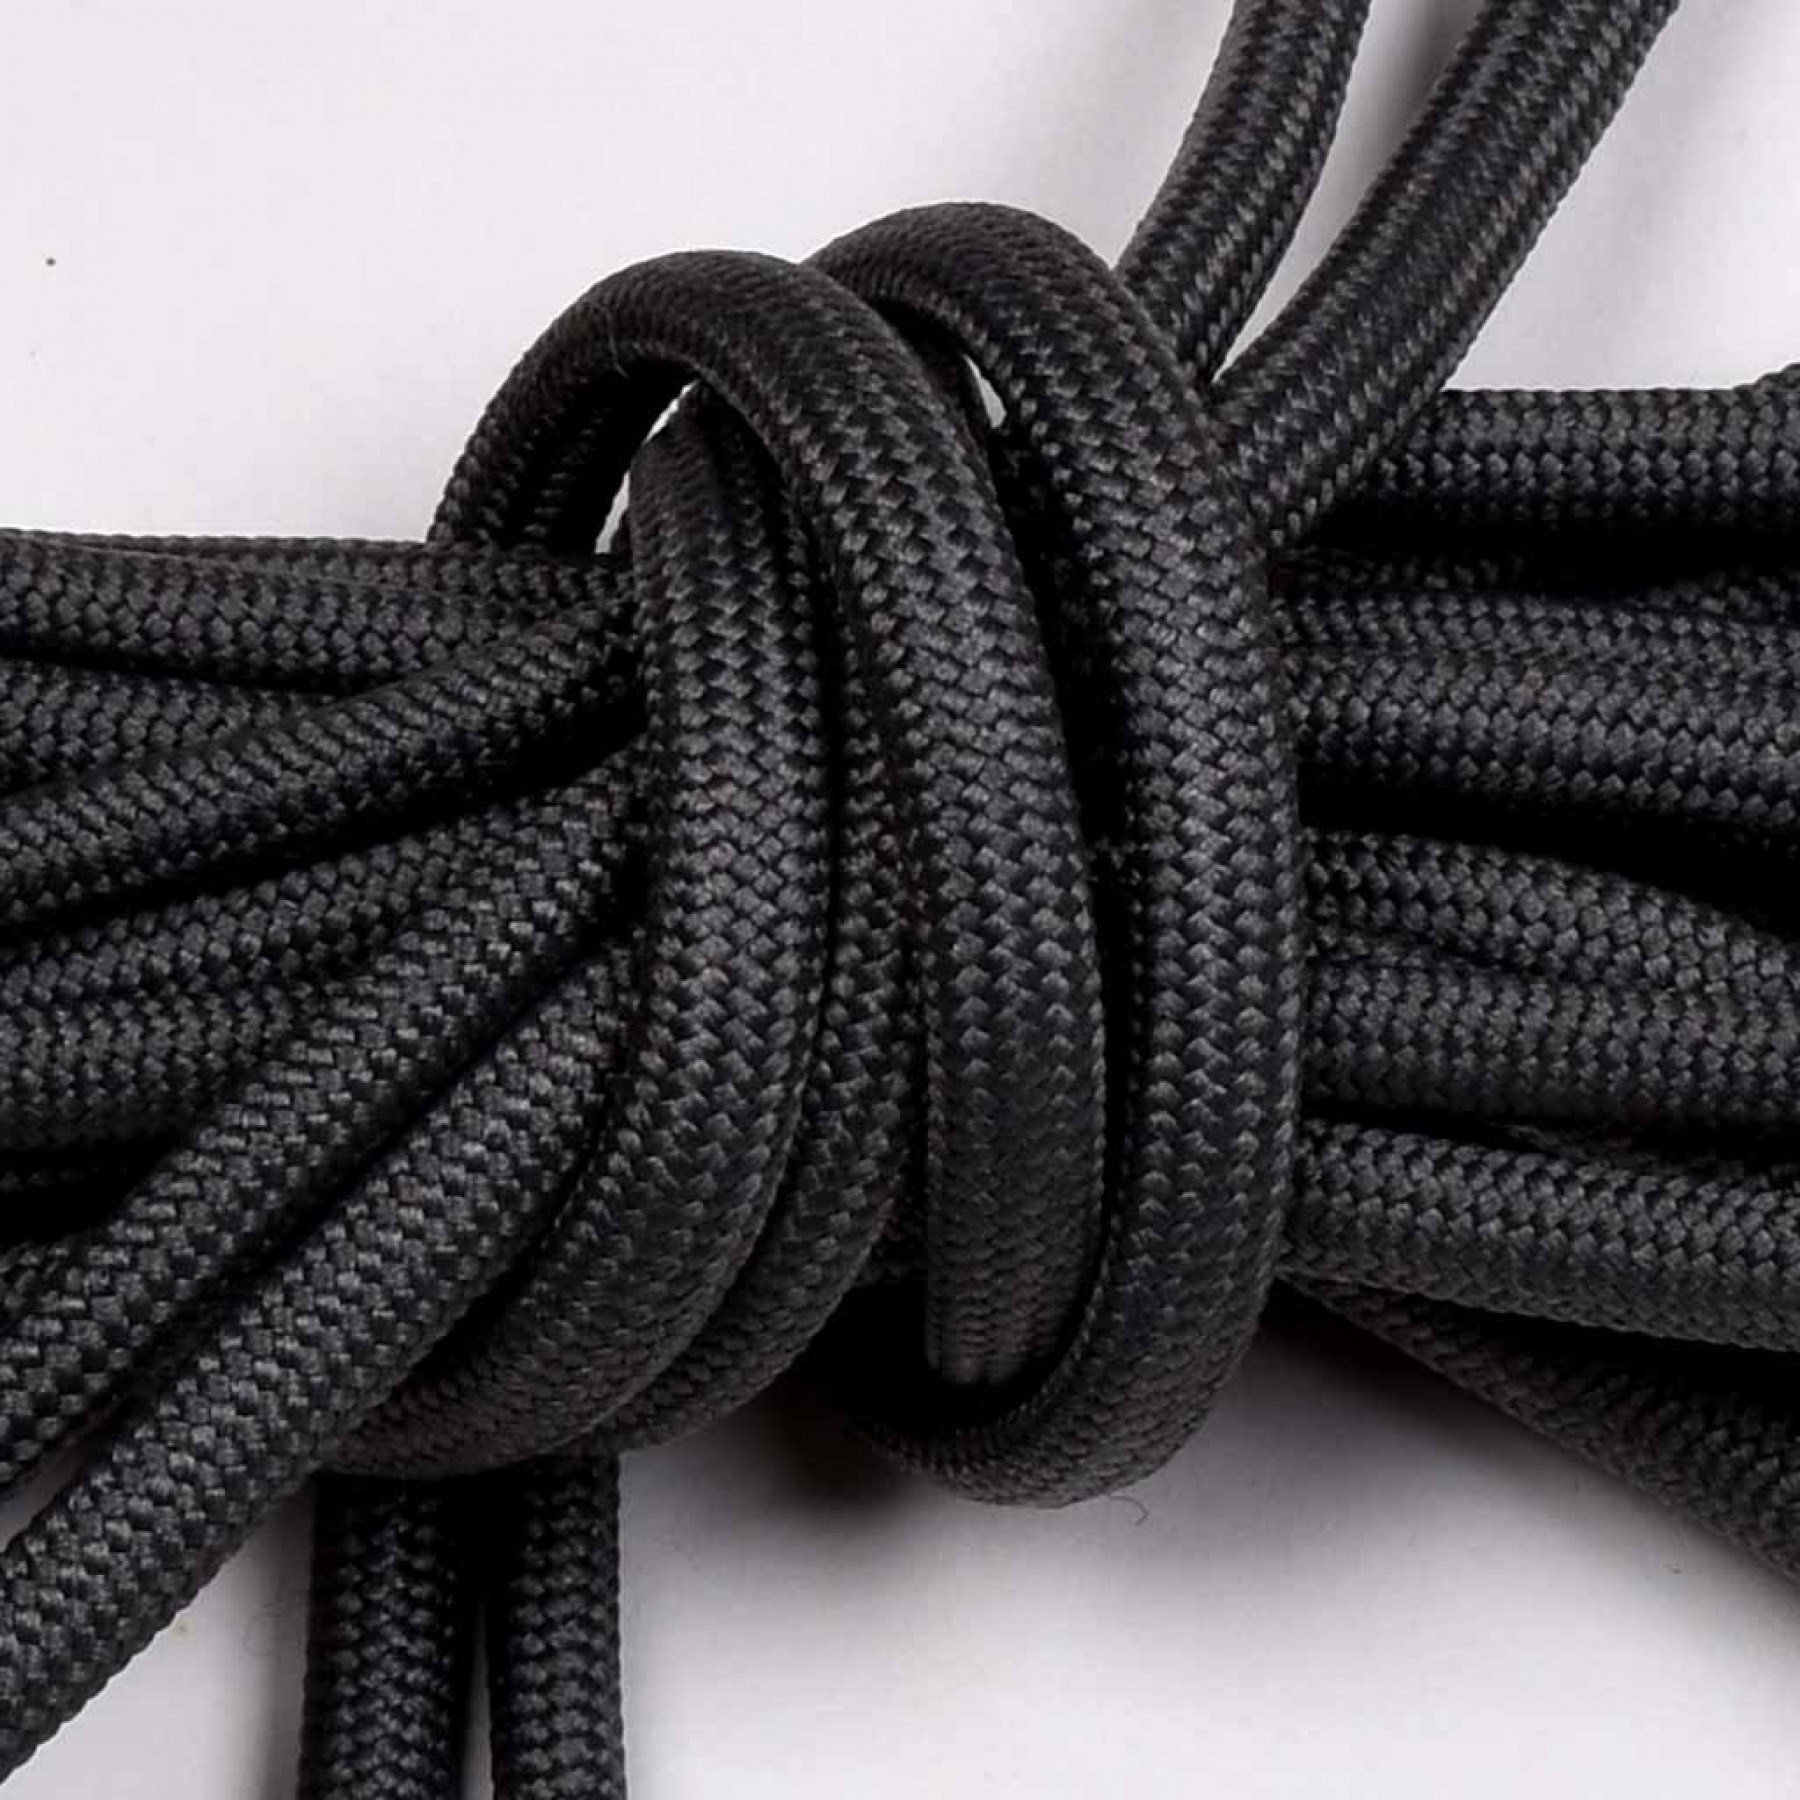 Laces, 165cm long, dark grey